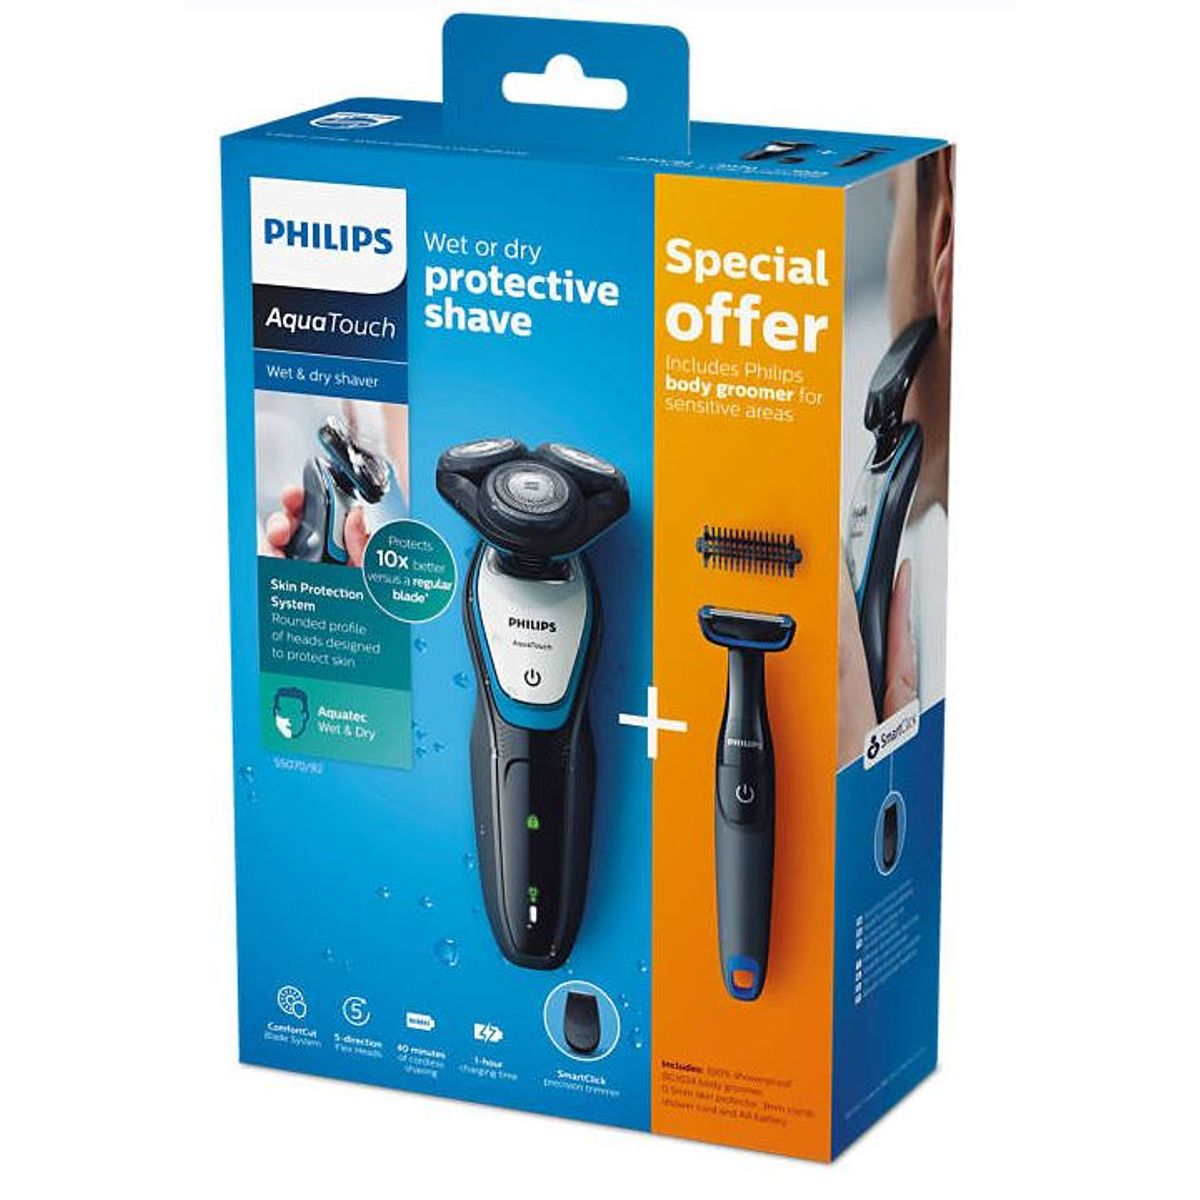 Philips AquaTouch S5070-92 Trimmer